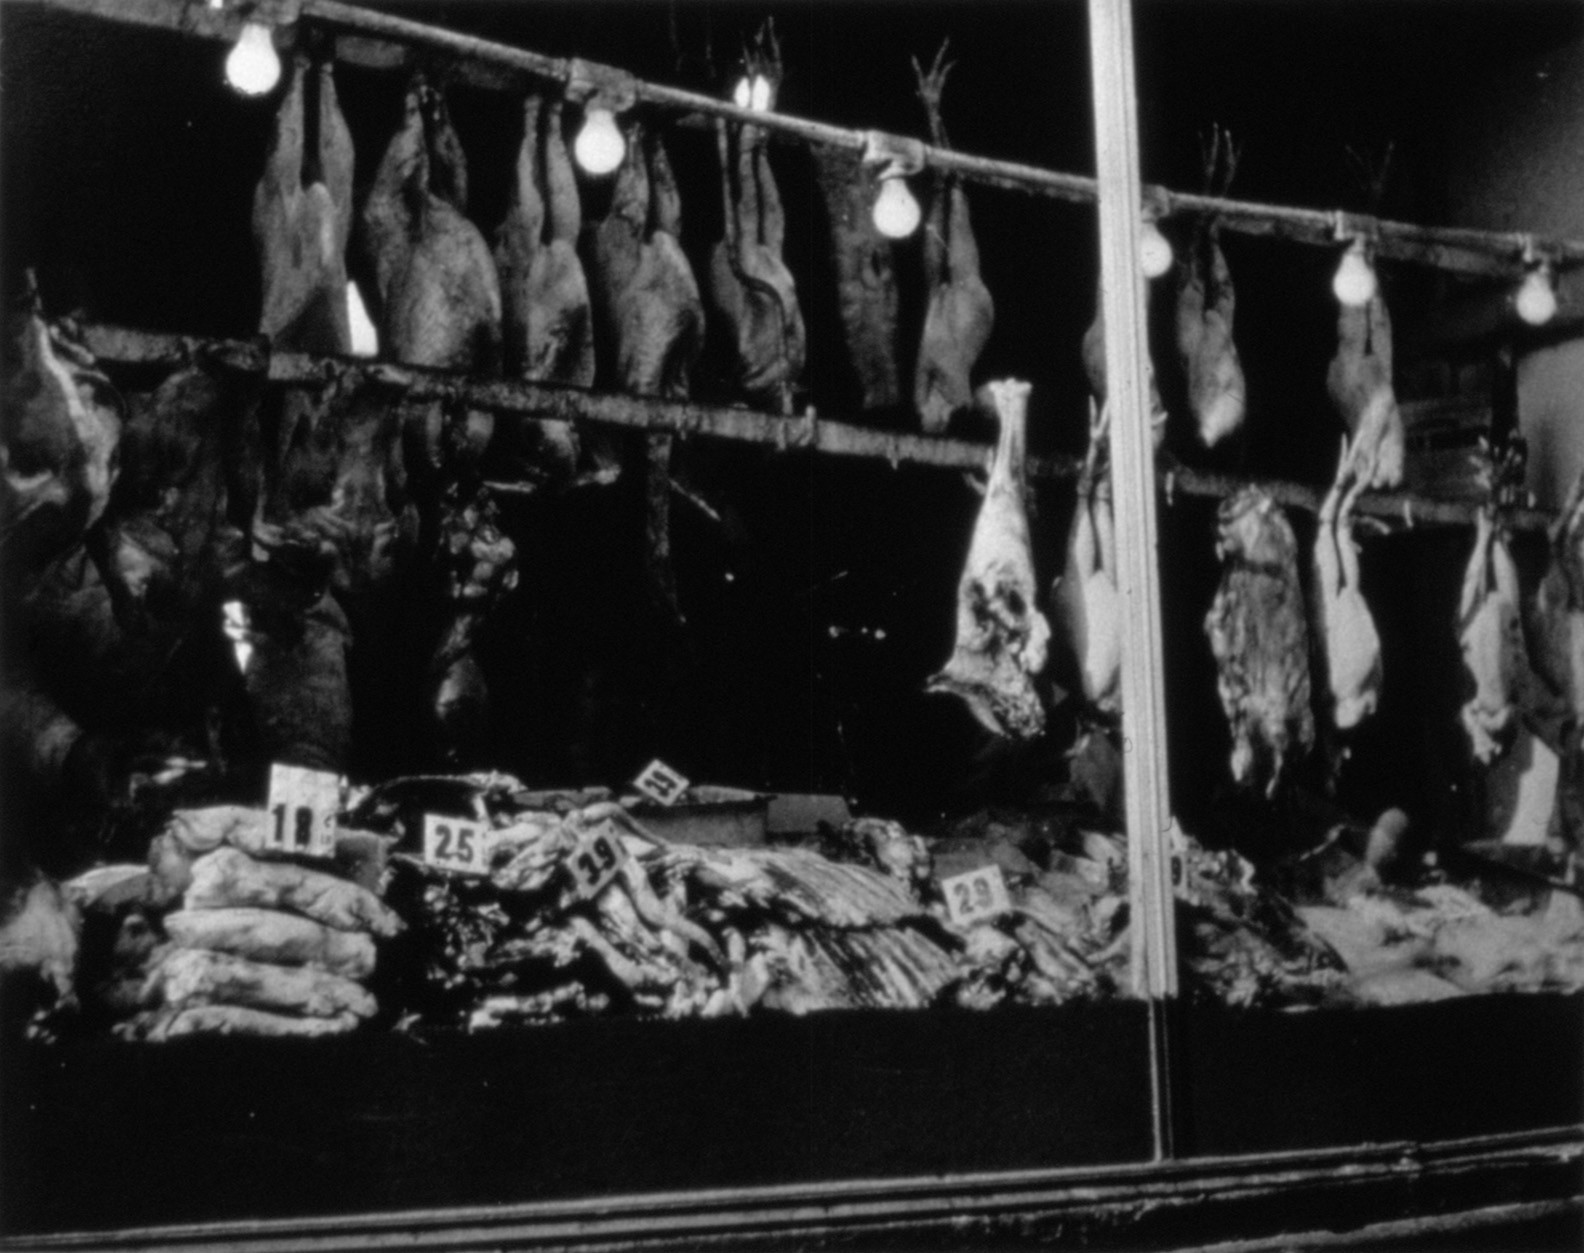 Butcher shop window with meat hanging circa 1900.